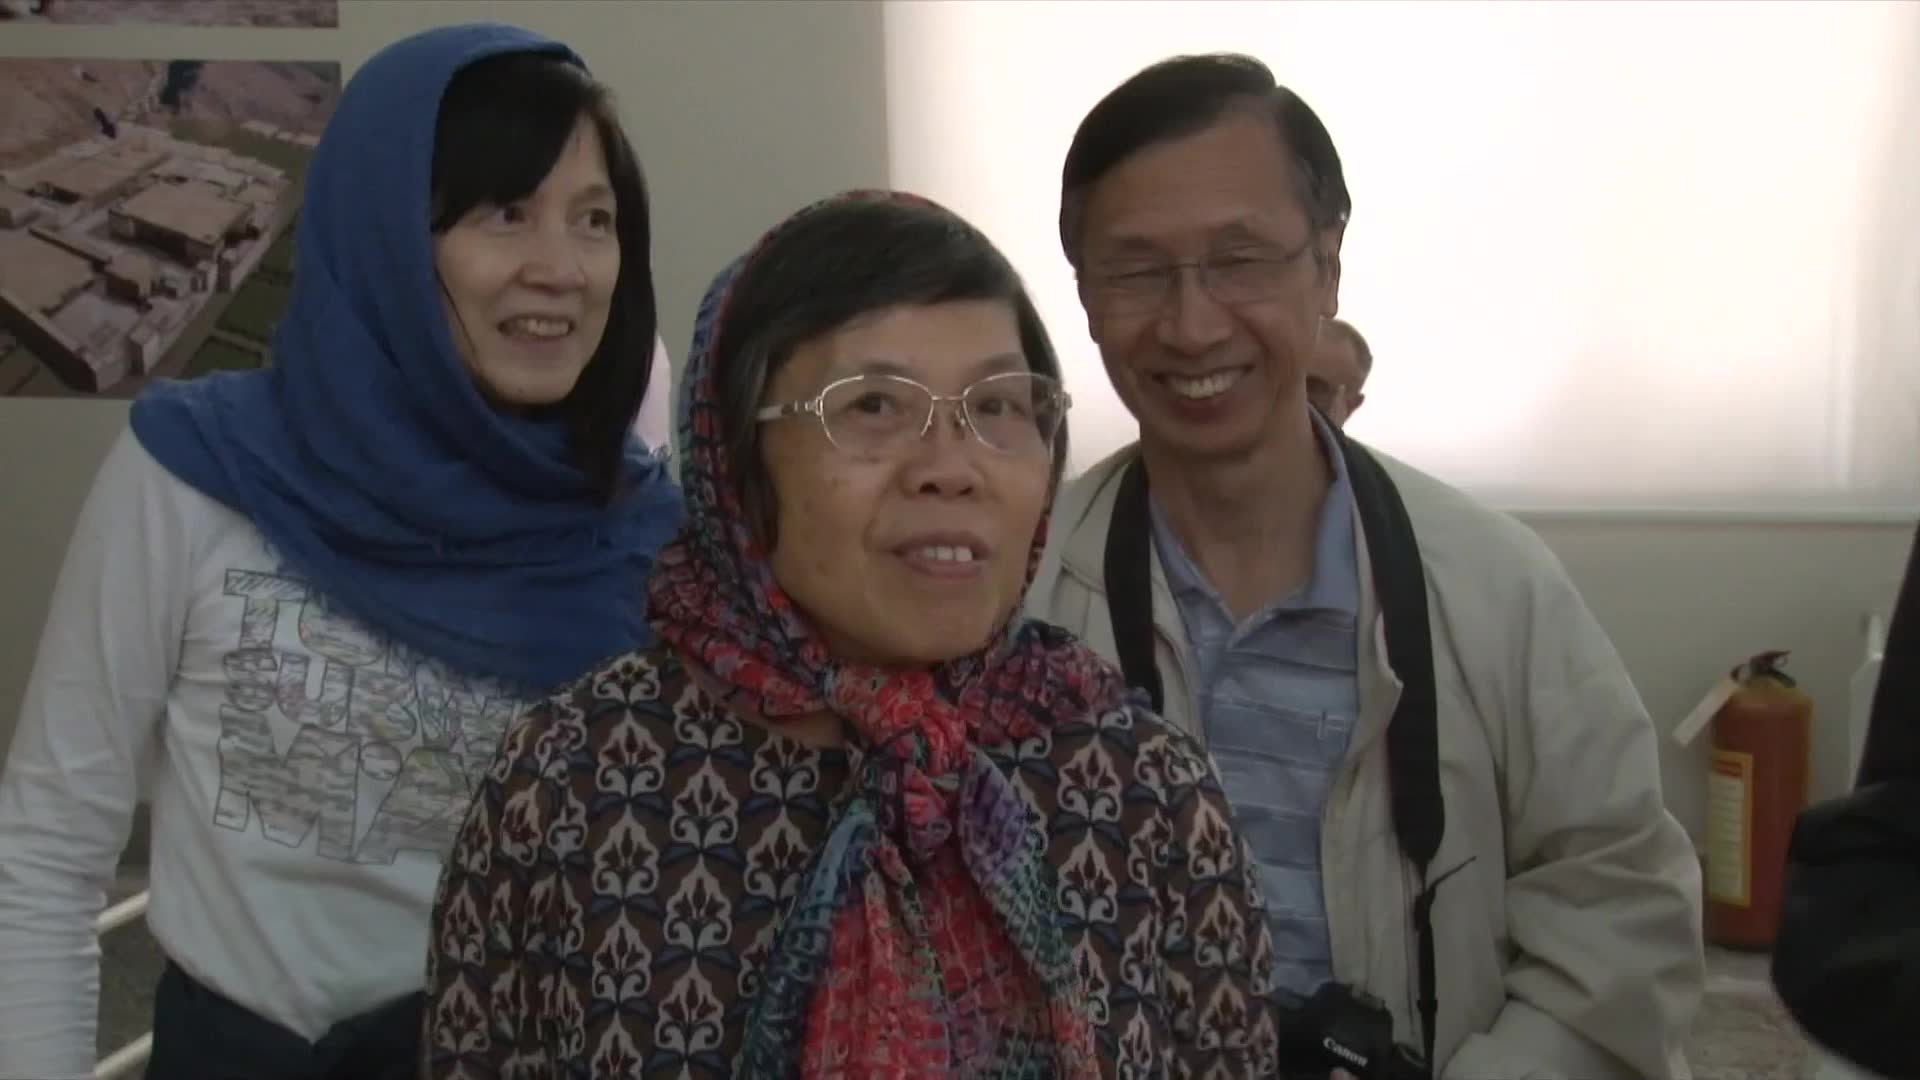 Iran waives visas for Chinese visitors to boost tourism | Video